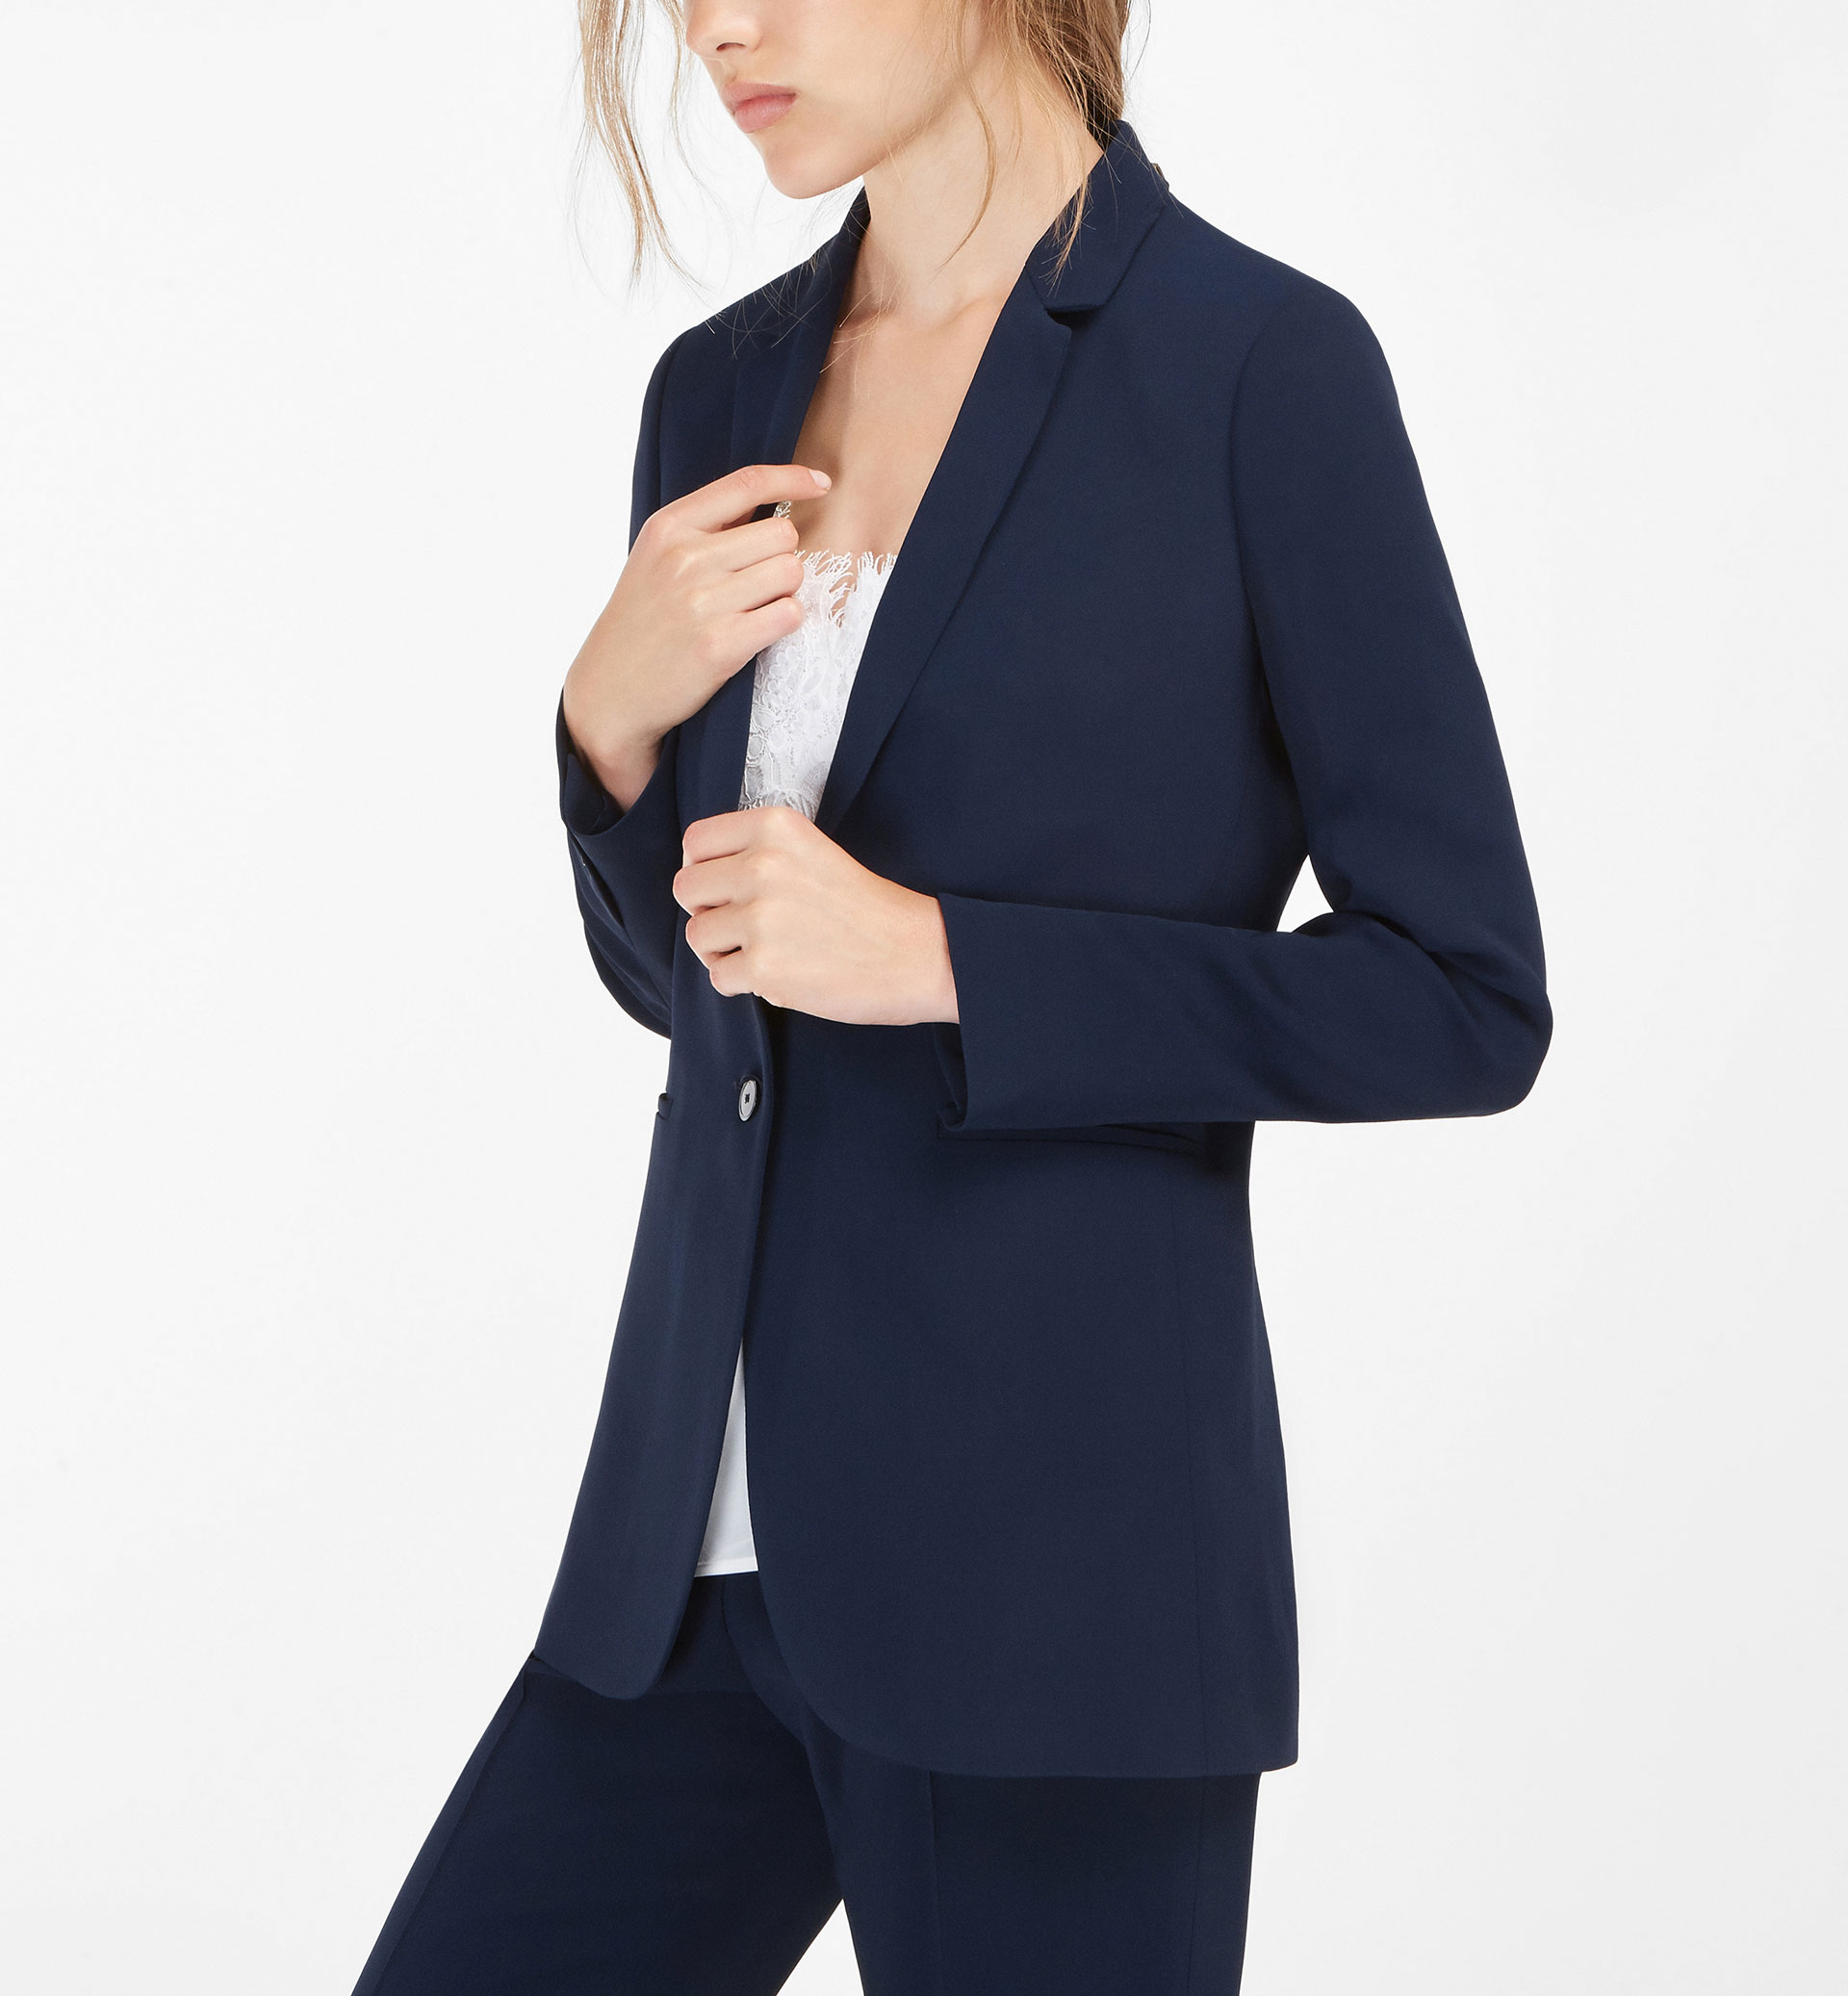 NAVY BLUE SUIT JACKET